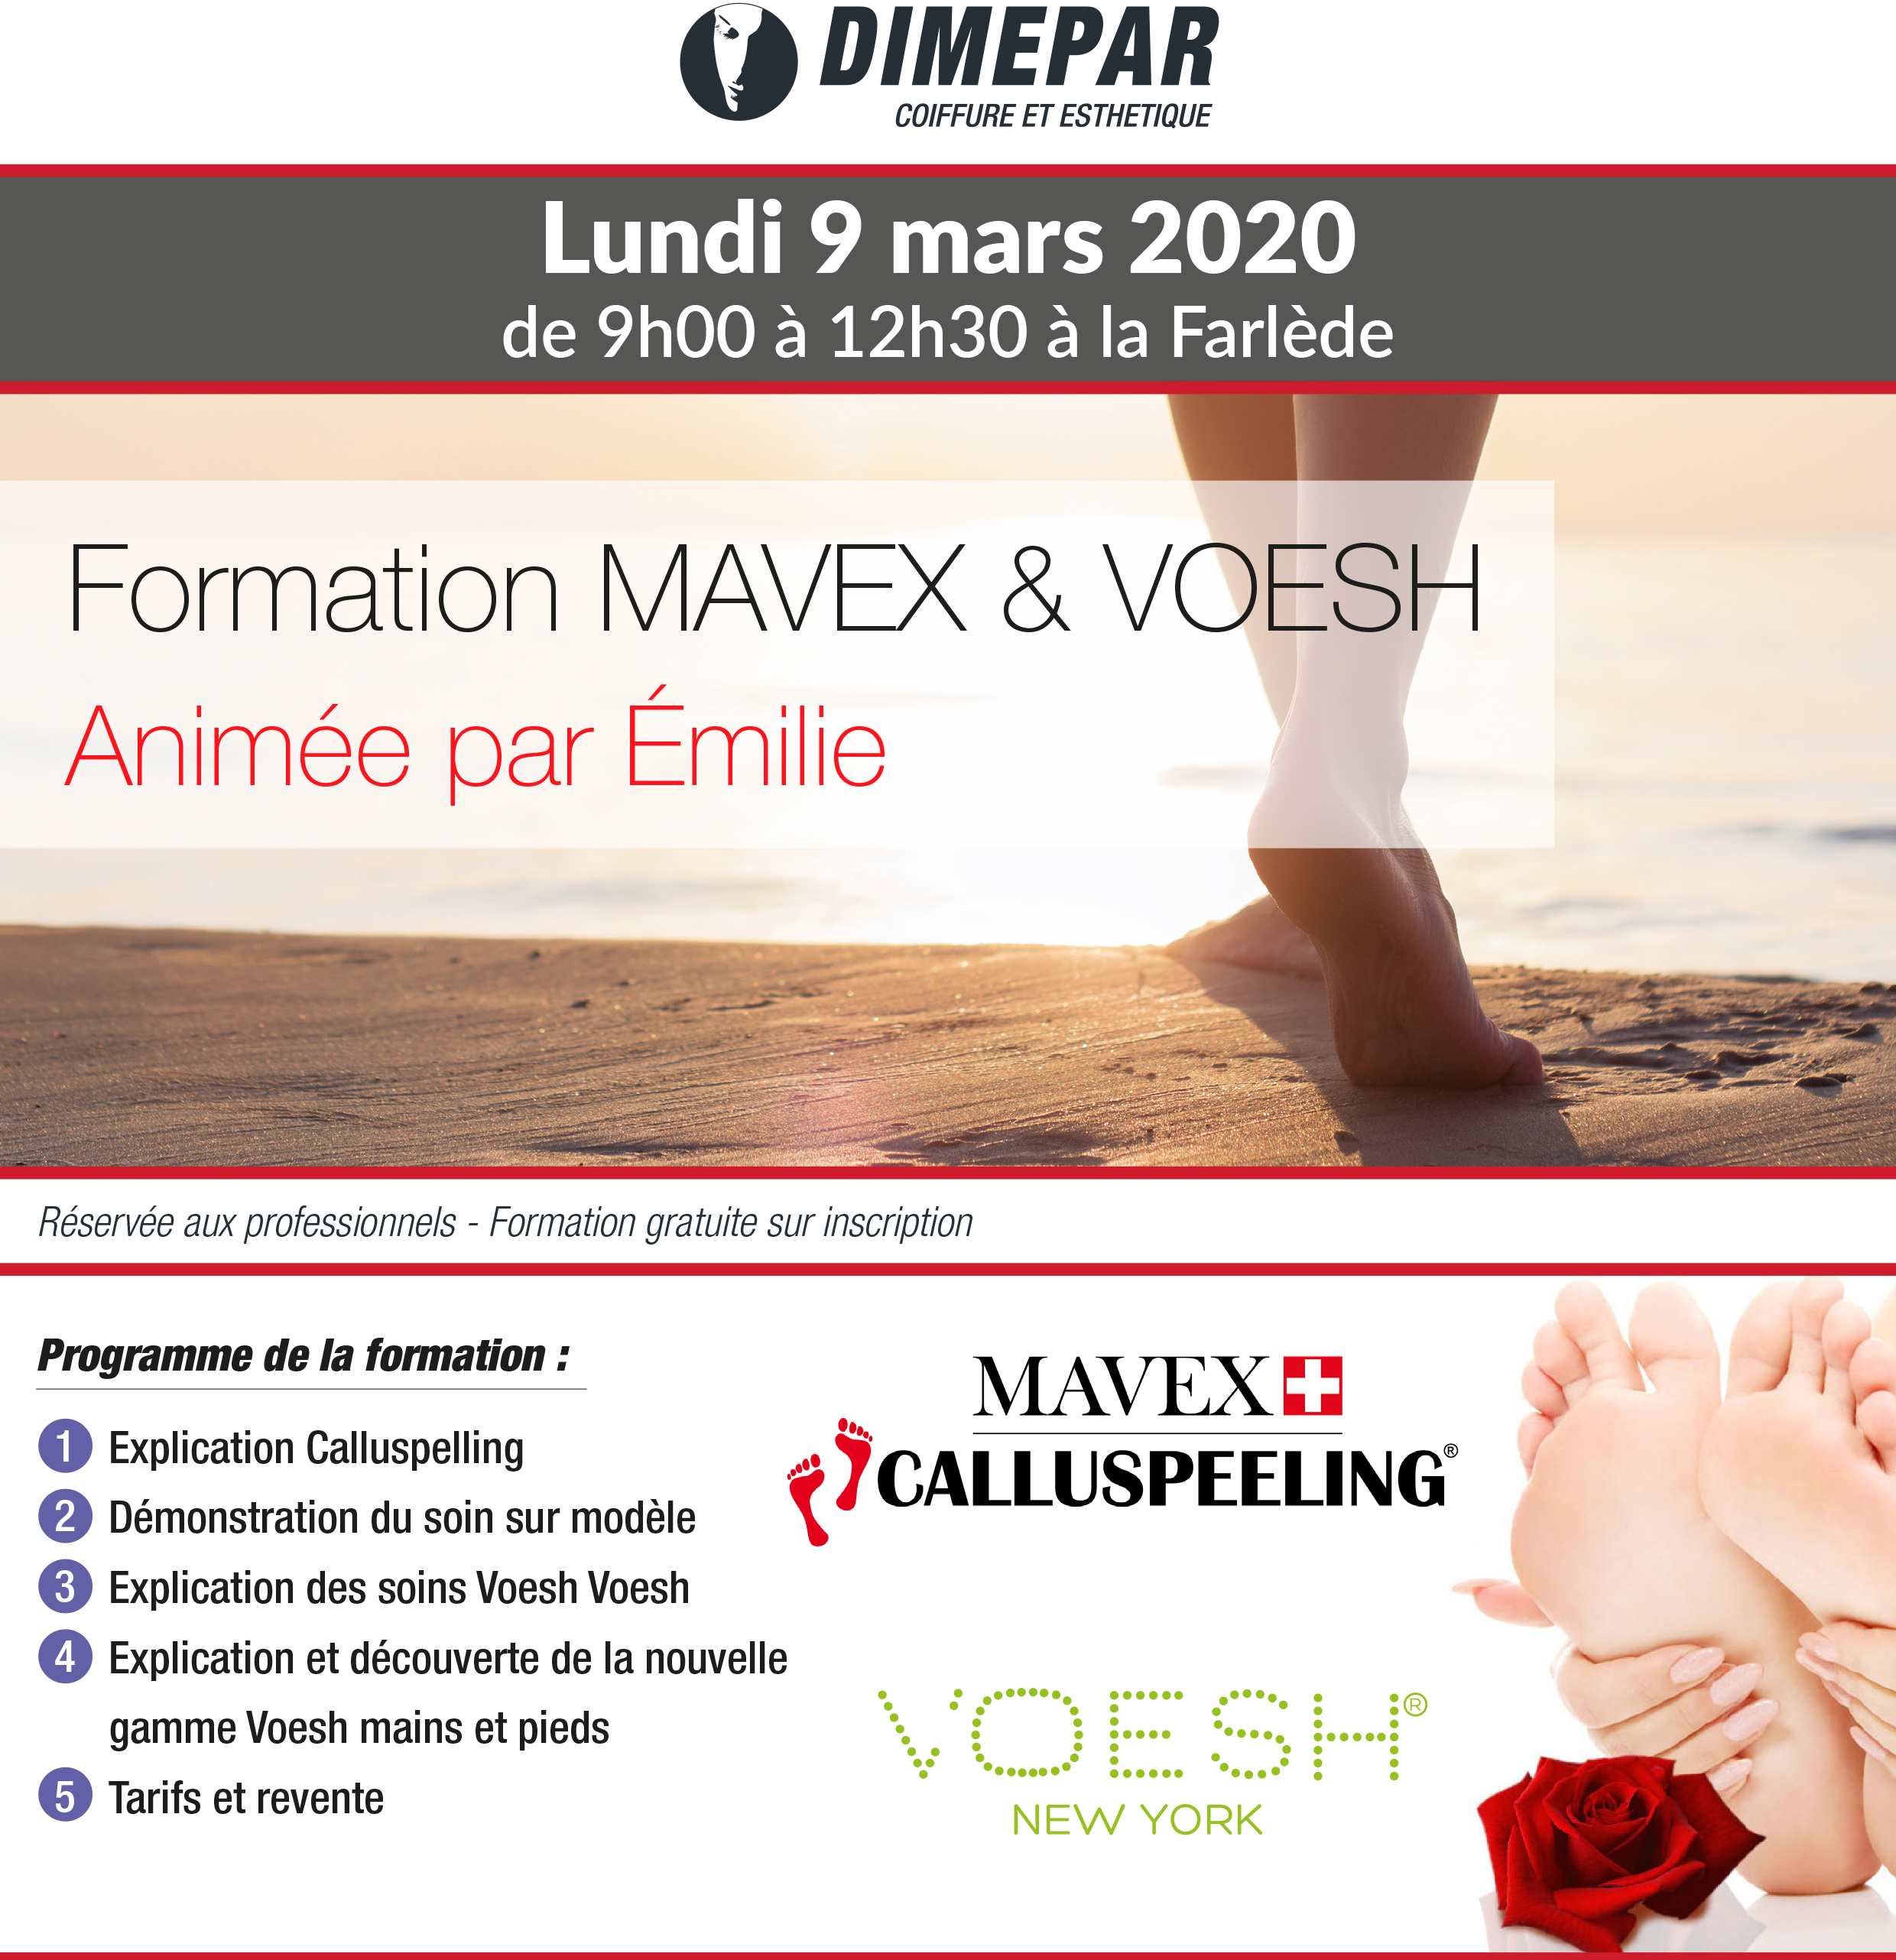 Formation MAVEX & VOESH